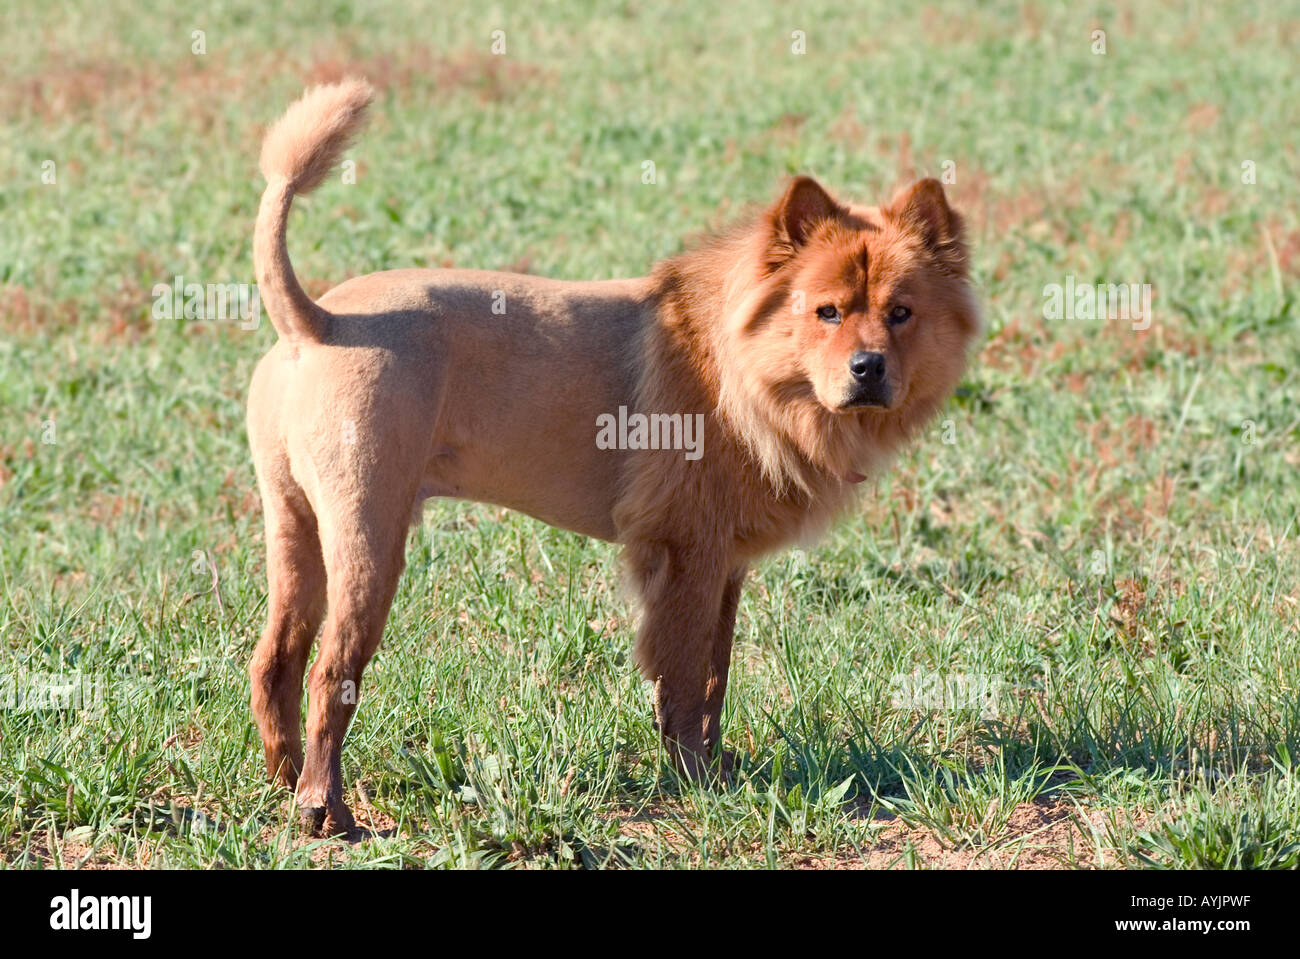 Chow Chow dog shaved to look like a lion standing in a green field